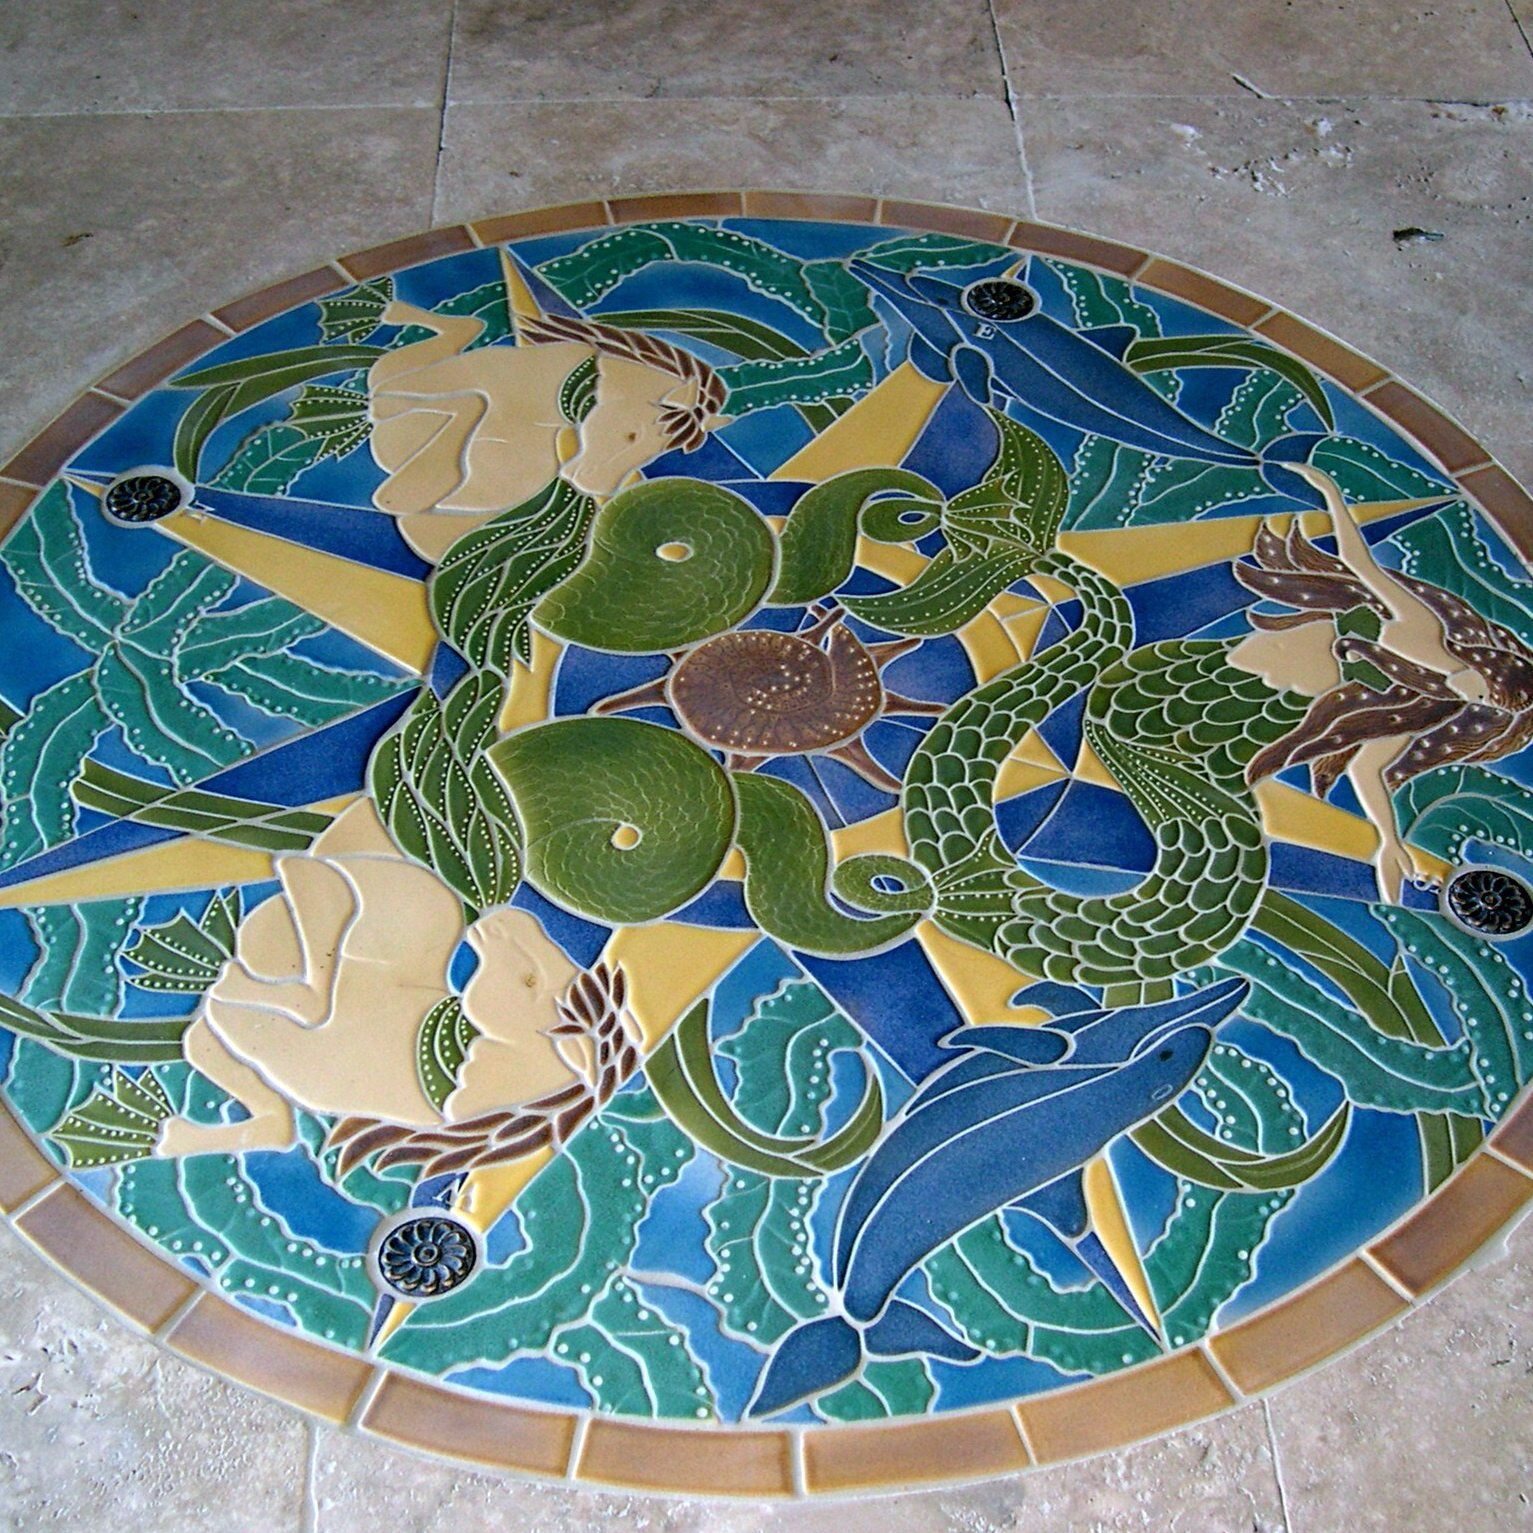 Luxury unicorn and mermaid bathroom mosaic tile art for fantastic patio floor ideas apply the - Basics mosaic tiles patios ...